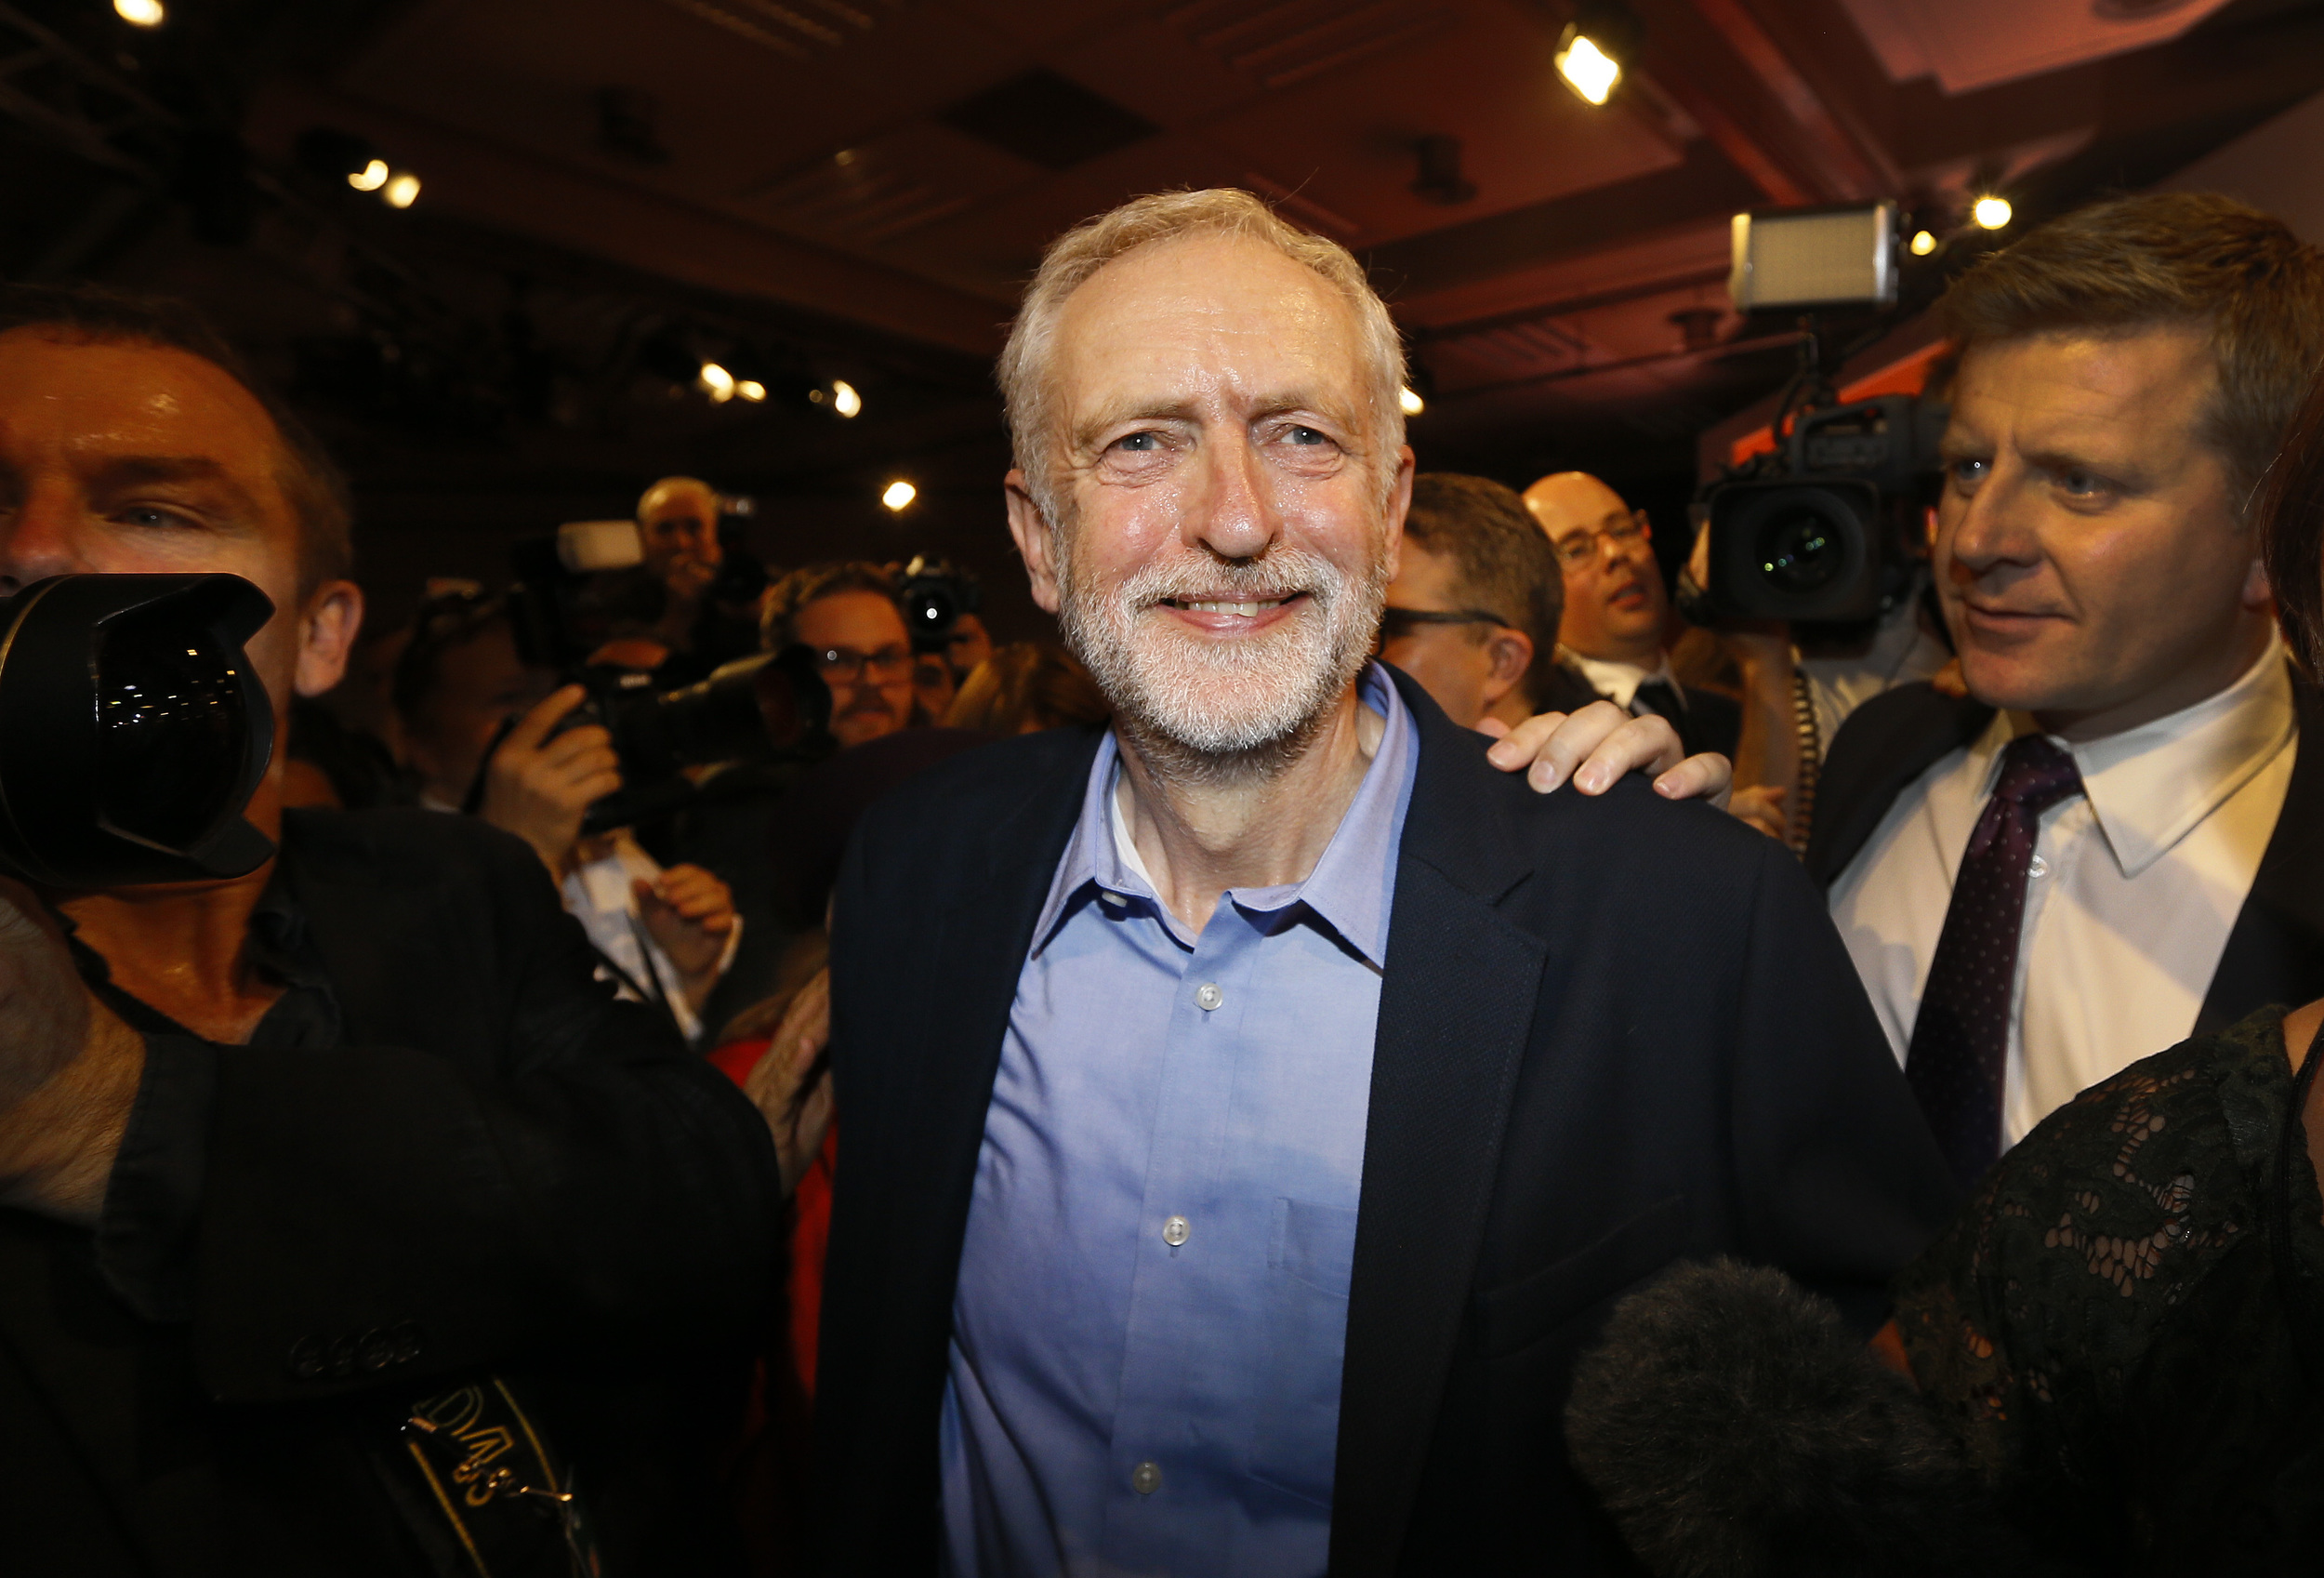 Jeremy Corbyn smiles as he leaves the stage after he is announced as the new leader of The Labour Party during the Labour Party Leadership Conference in London, Saturday, Sept. 12, 2015. Corbyn will now lead Britain's main opposition party. (Kirsty Wigglesworth/AP)